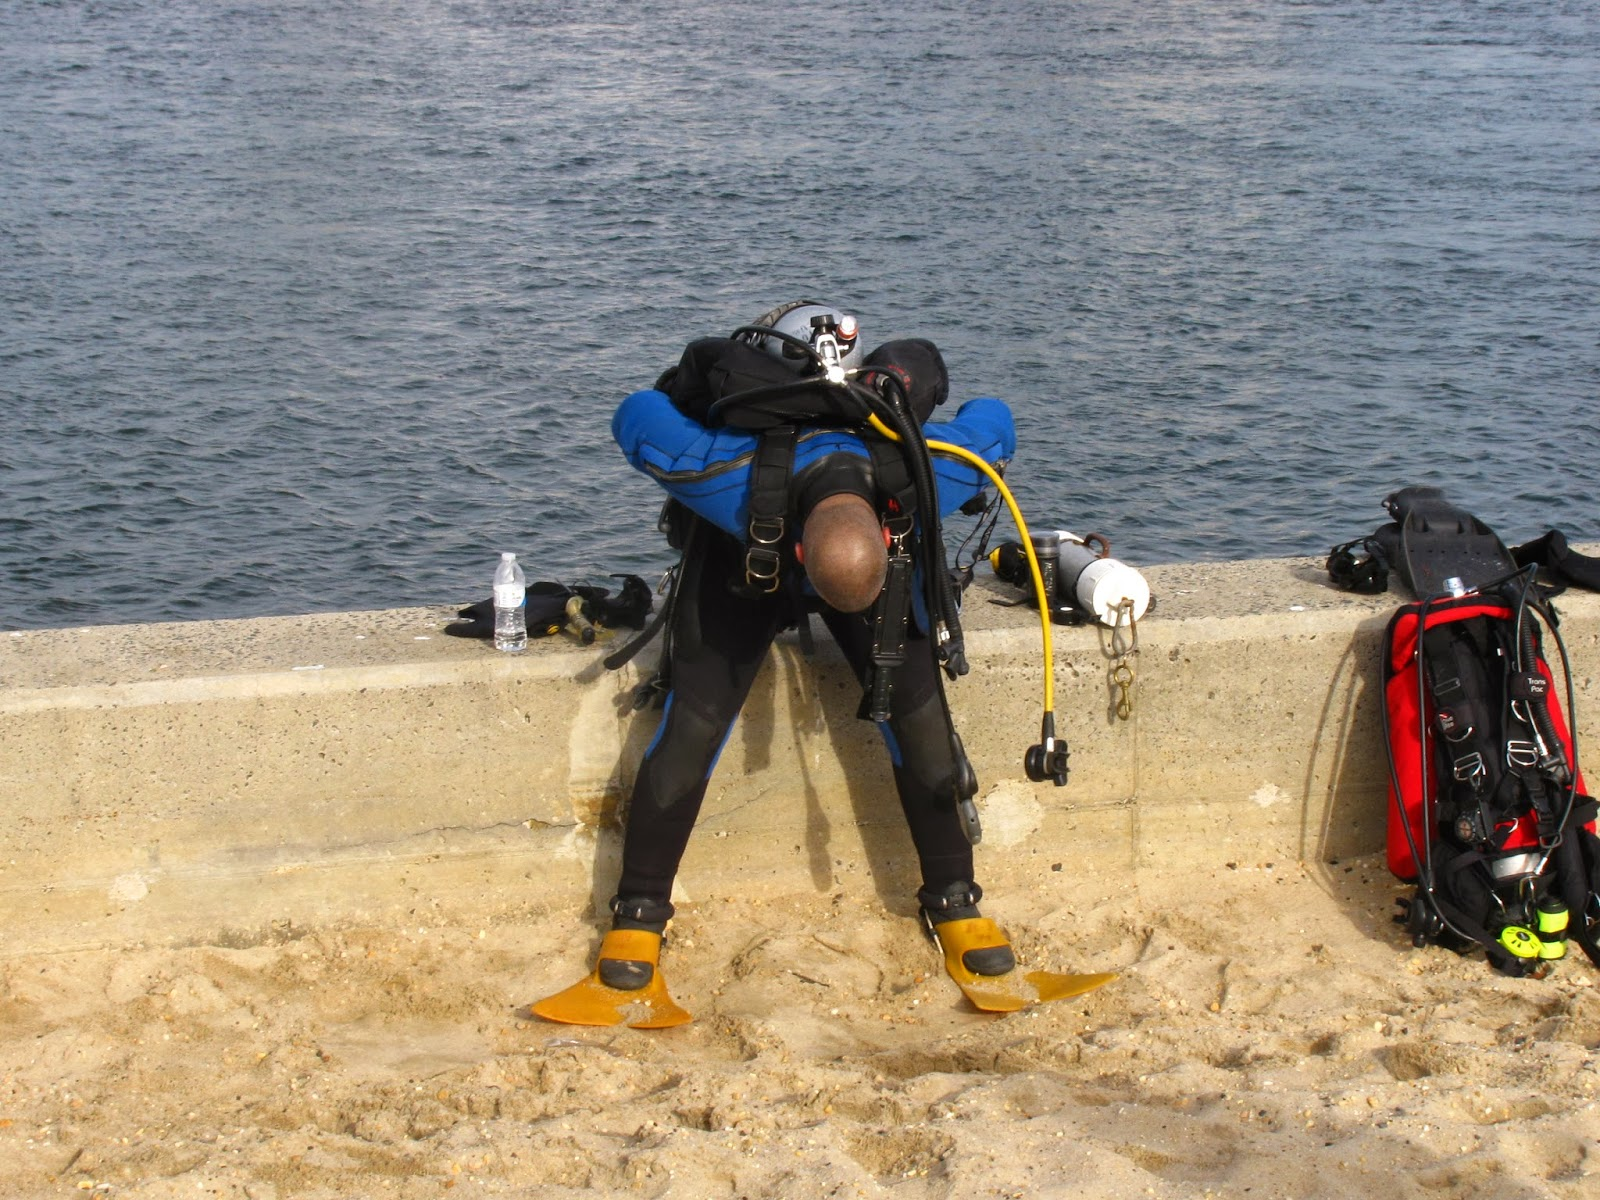 Point pleasant beach rescue dive team new years dive 2014 sometimes mother nature throws us a surprise this year it was a slack tide that ran almost two hours late the tide chart said the slack should be at nvjuhfo Image collections